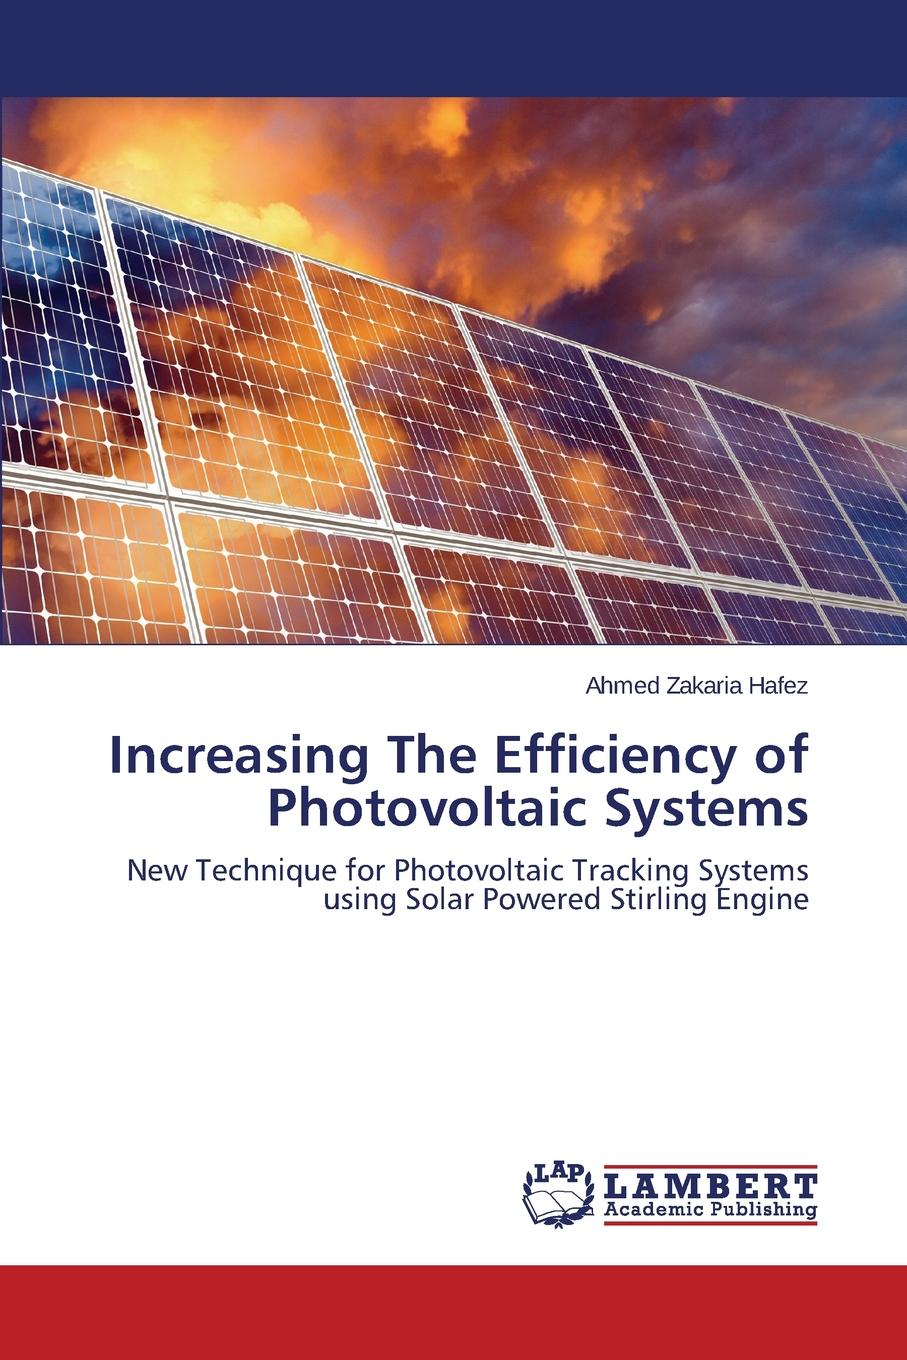 Hafez Ahmed Zakaria Increasing The Efficiency of Photovoltaic Systems universal adjustable solar panel wall and ground mounting bracket